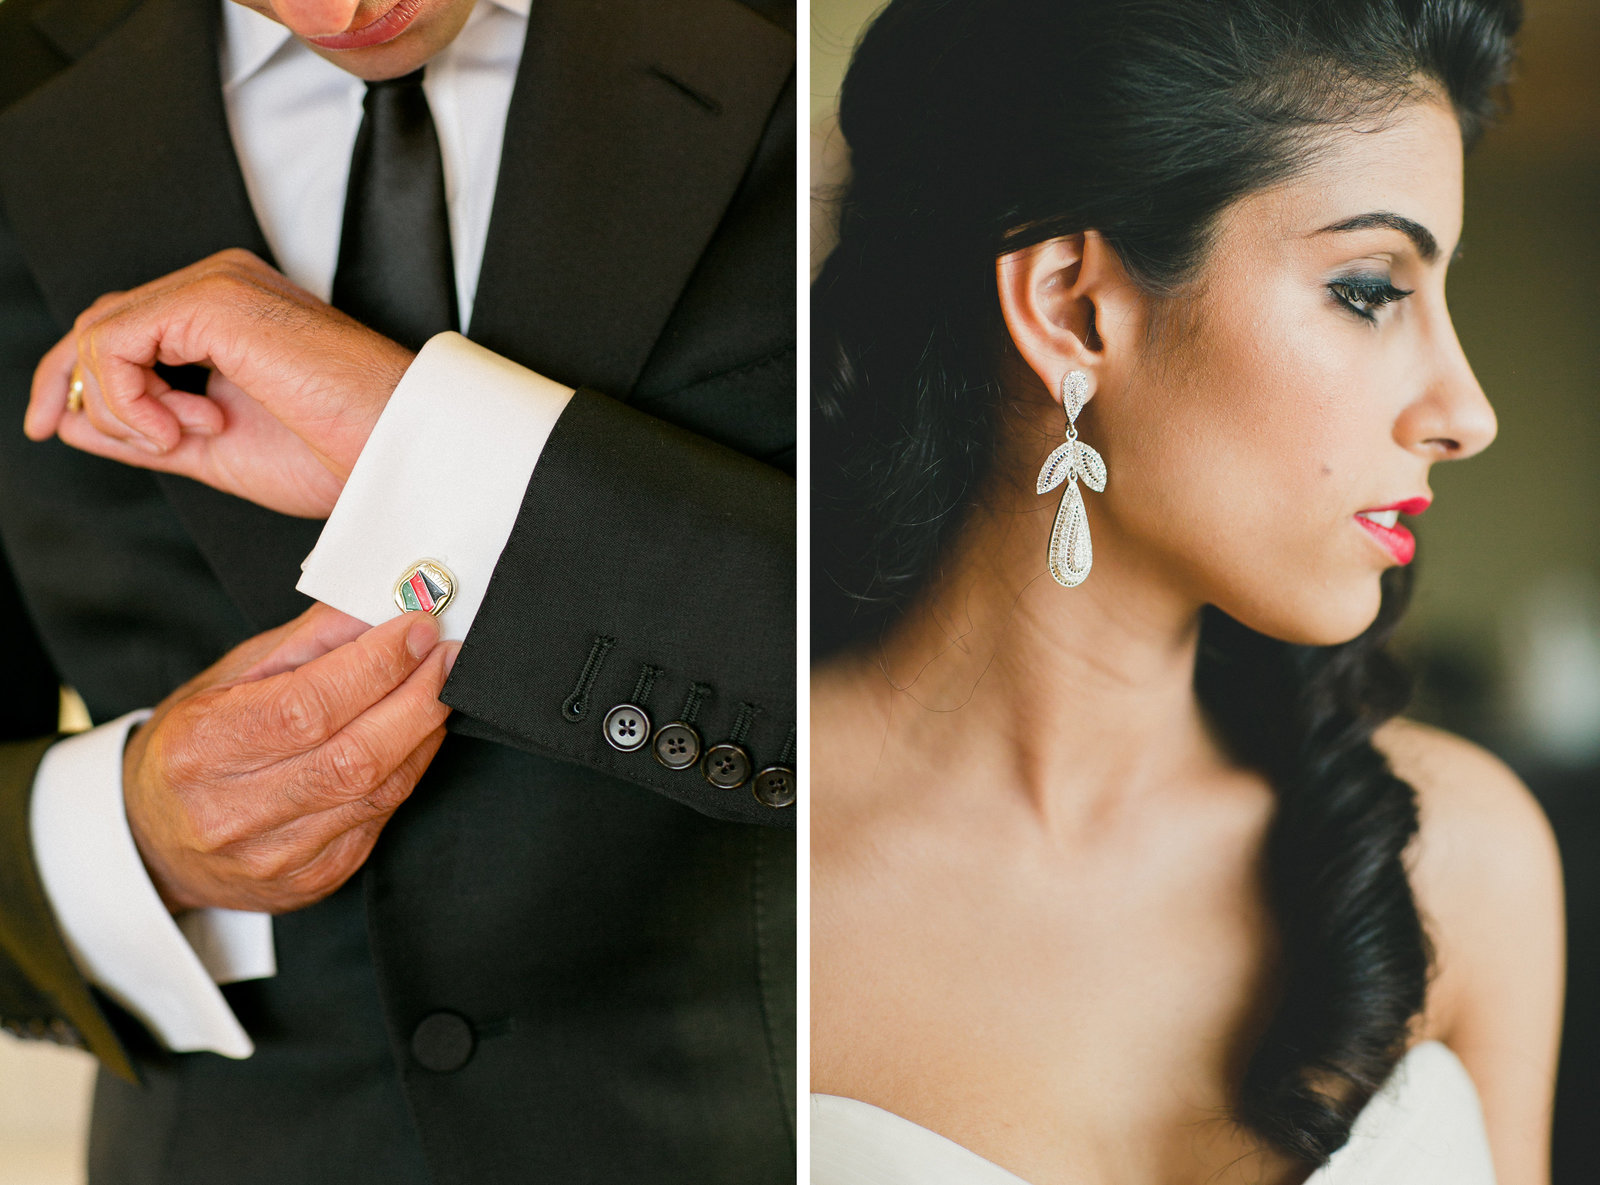 Wedding Earrings and cufflinks